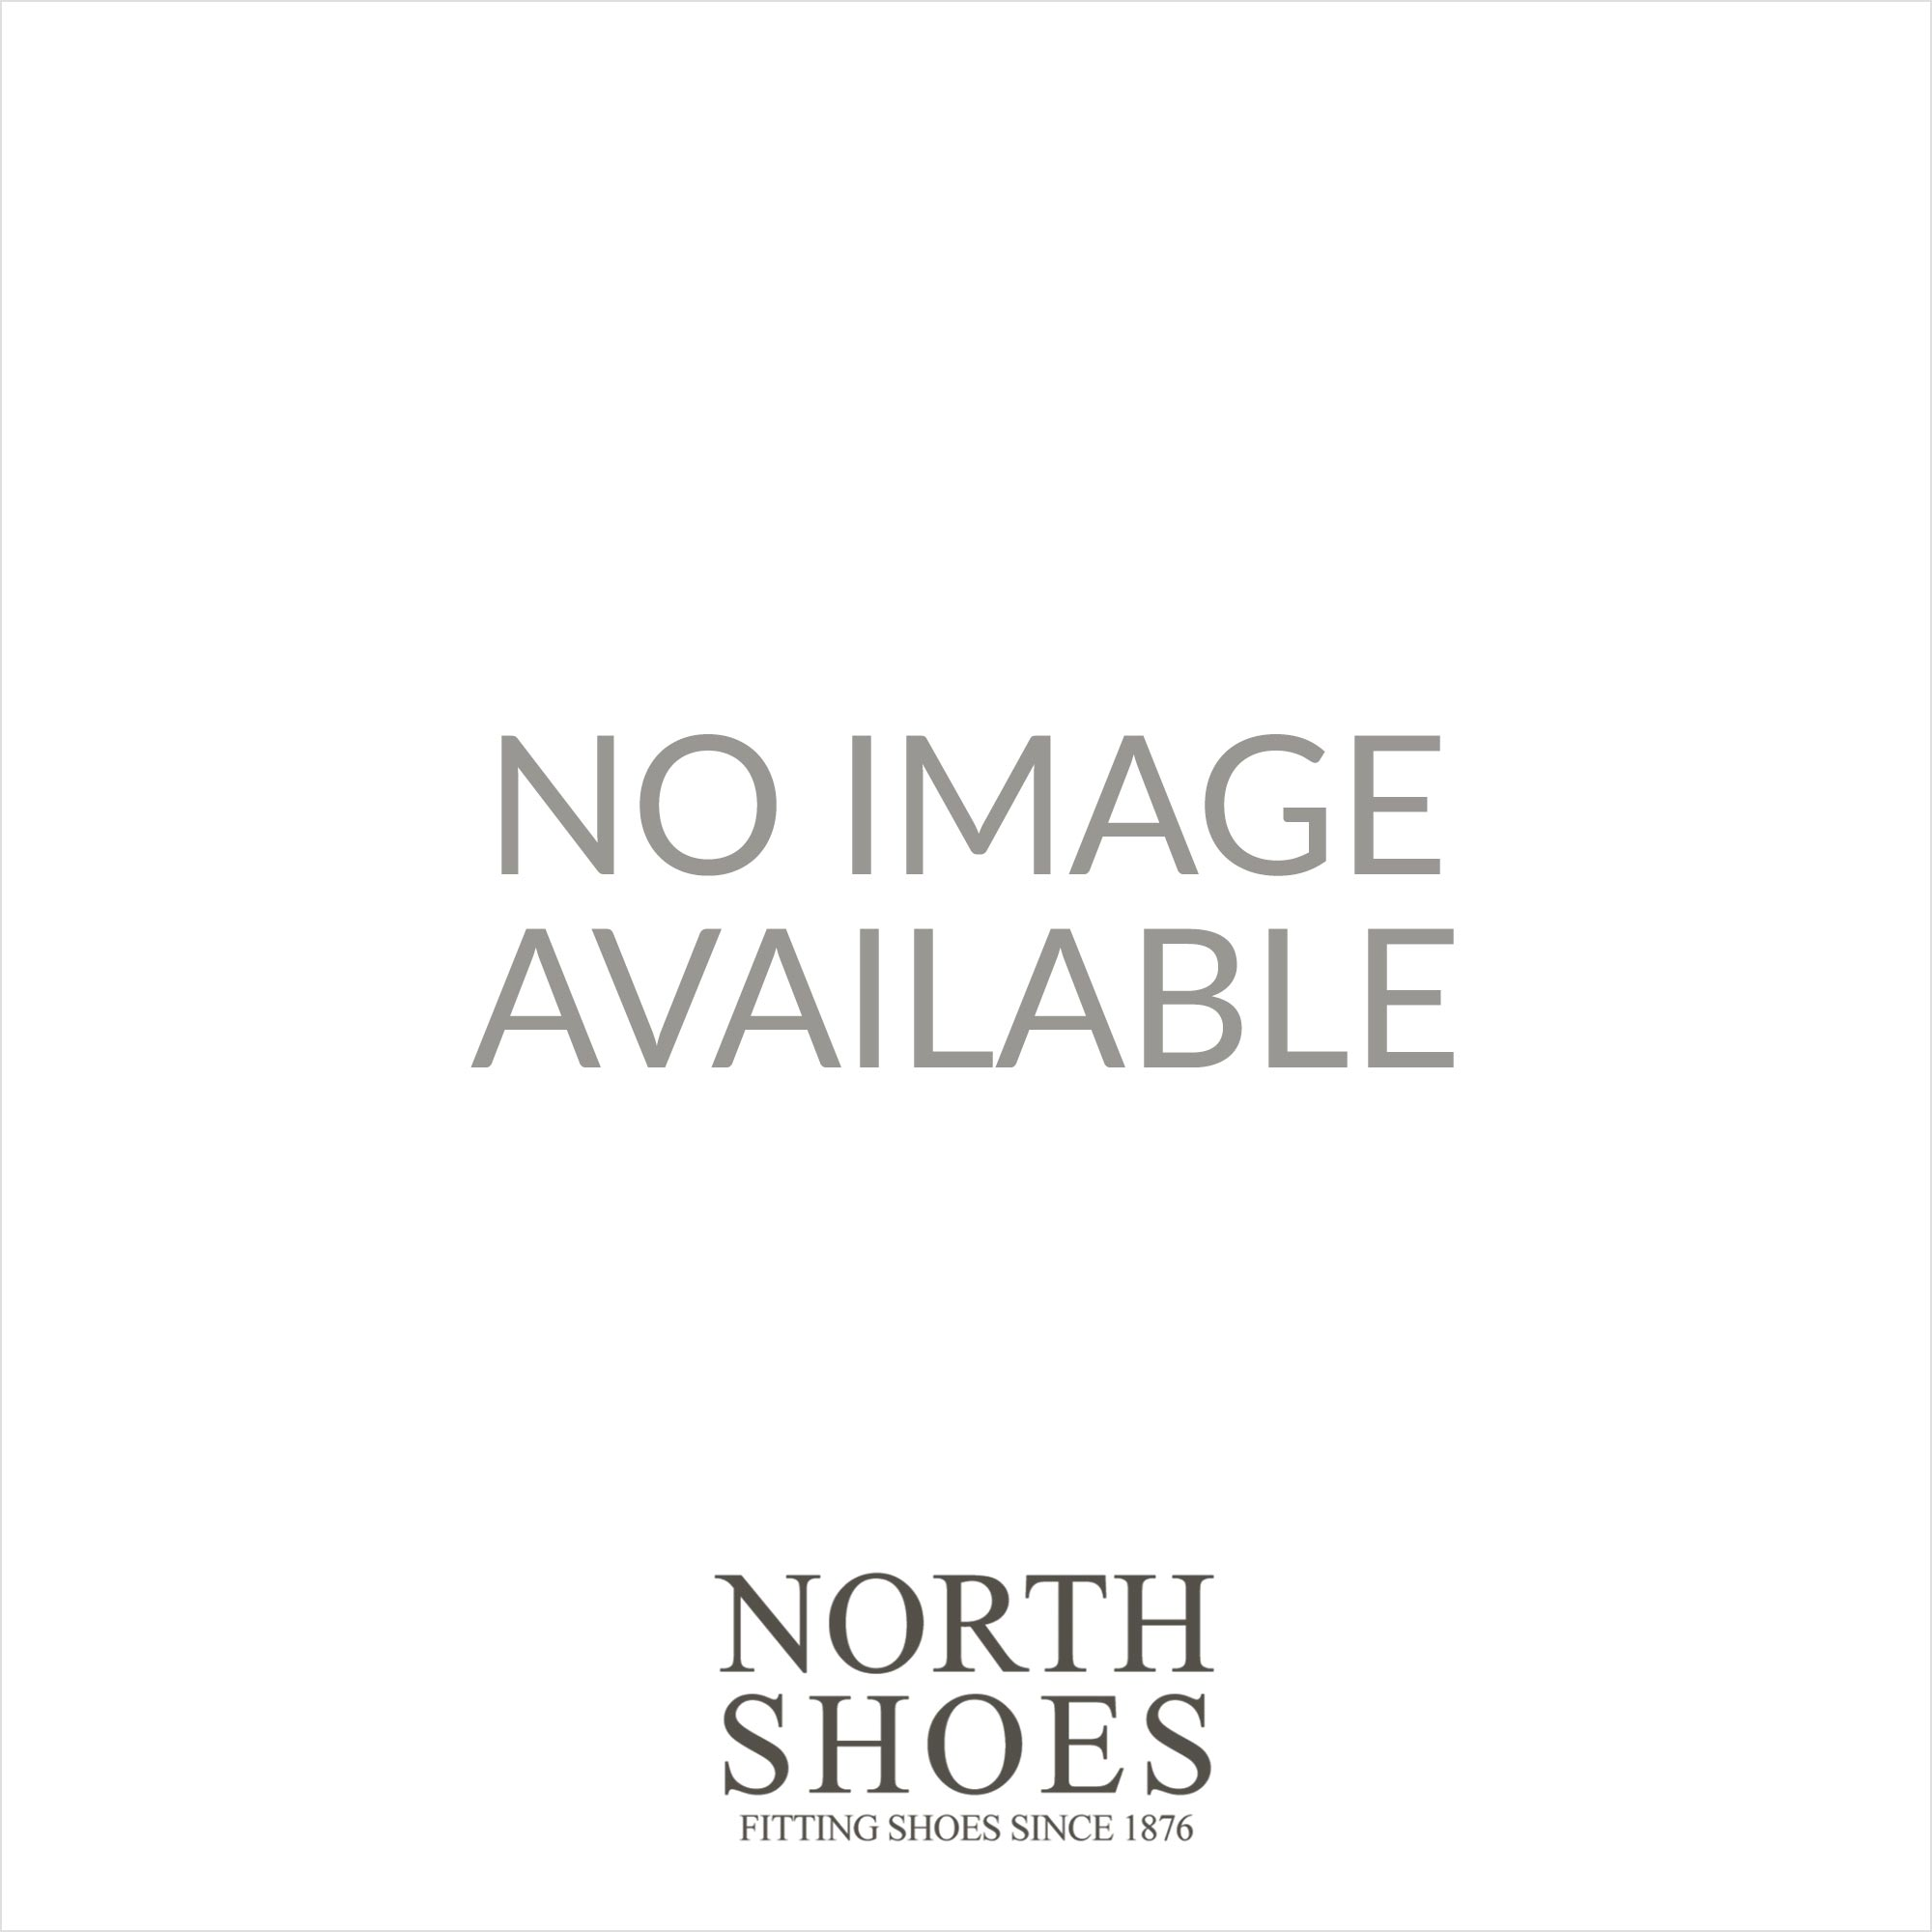 fbb1379a8466 Clarks Sail Beach Silver Leather Womens Buckle Strapy Jewelled Sandal -  Clarks from North Shoes UK